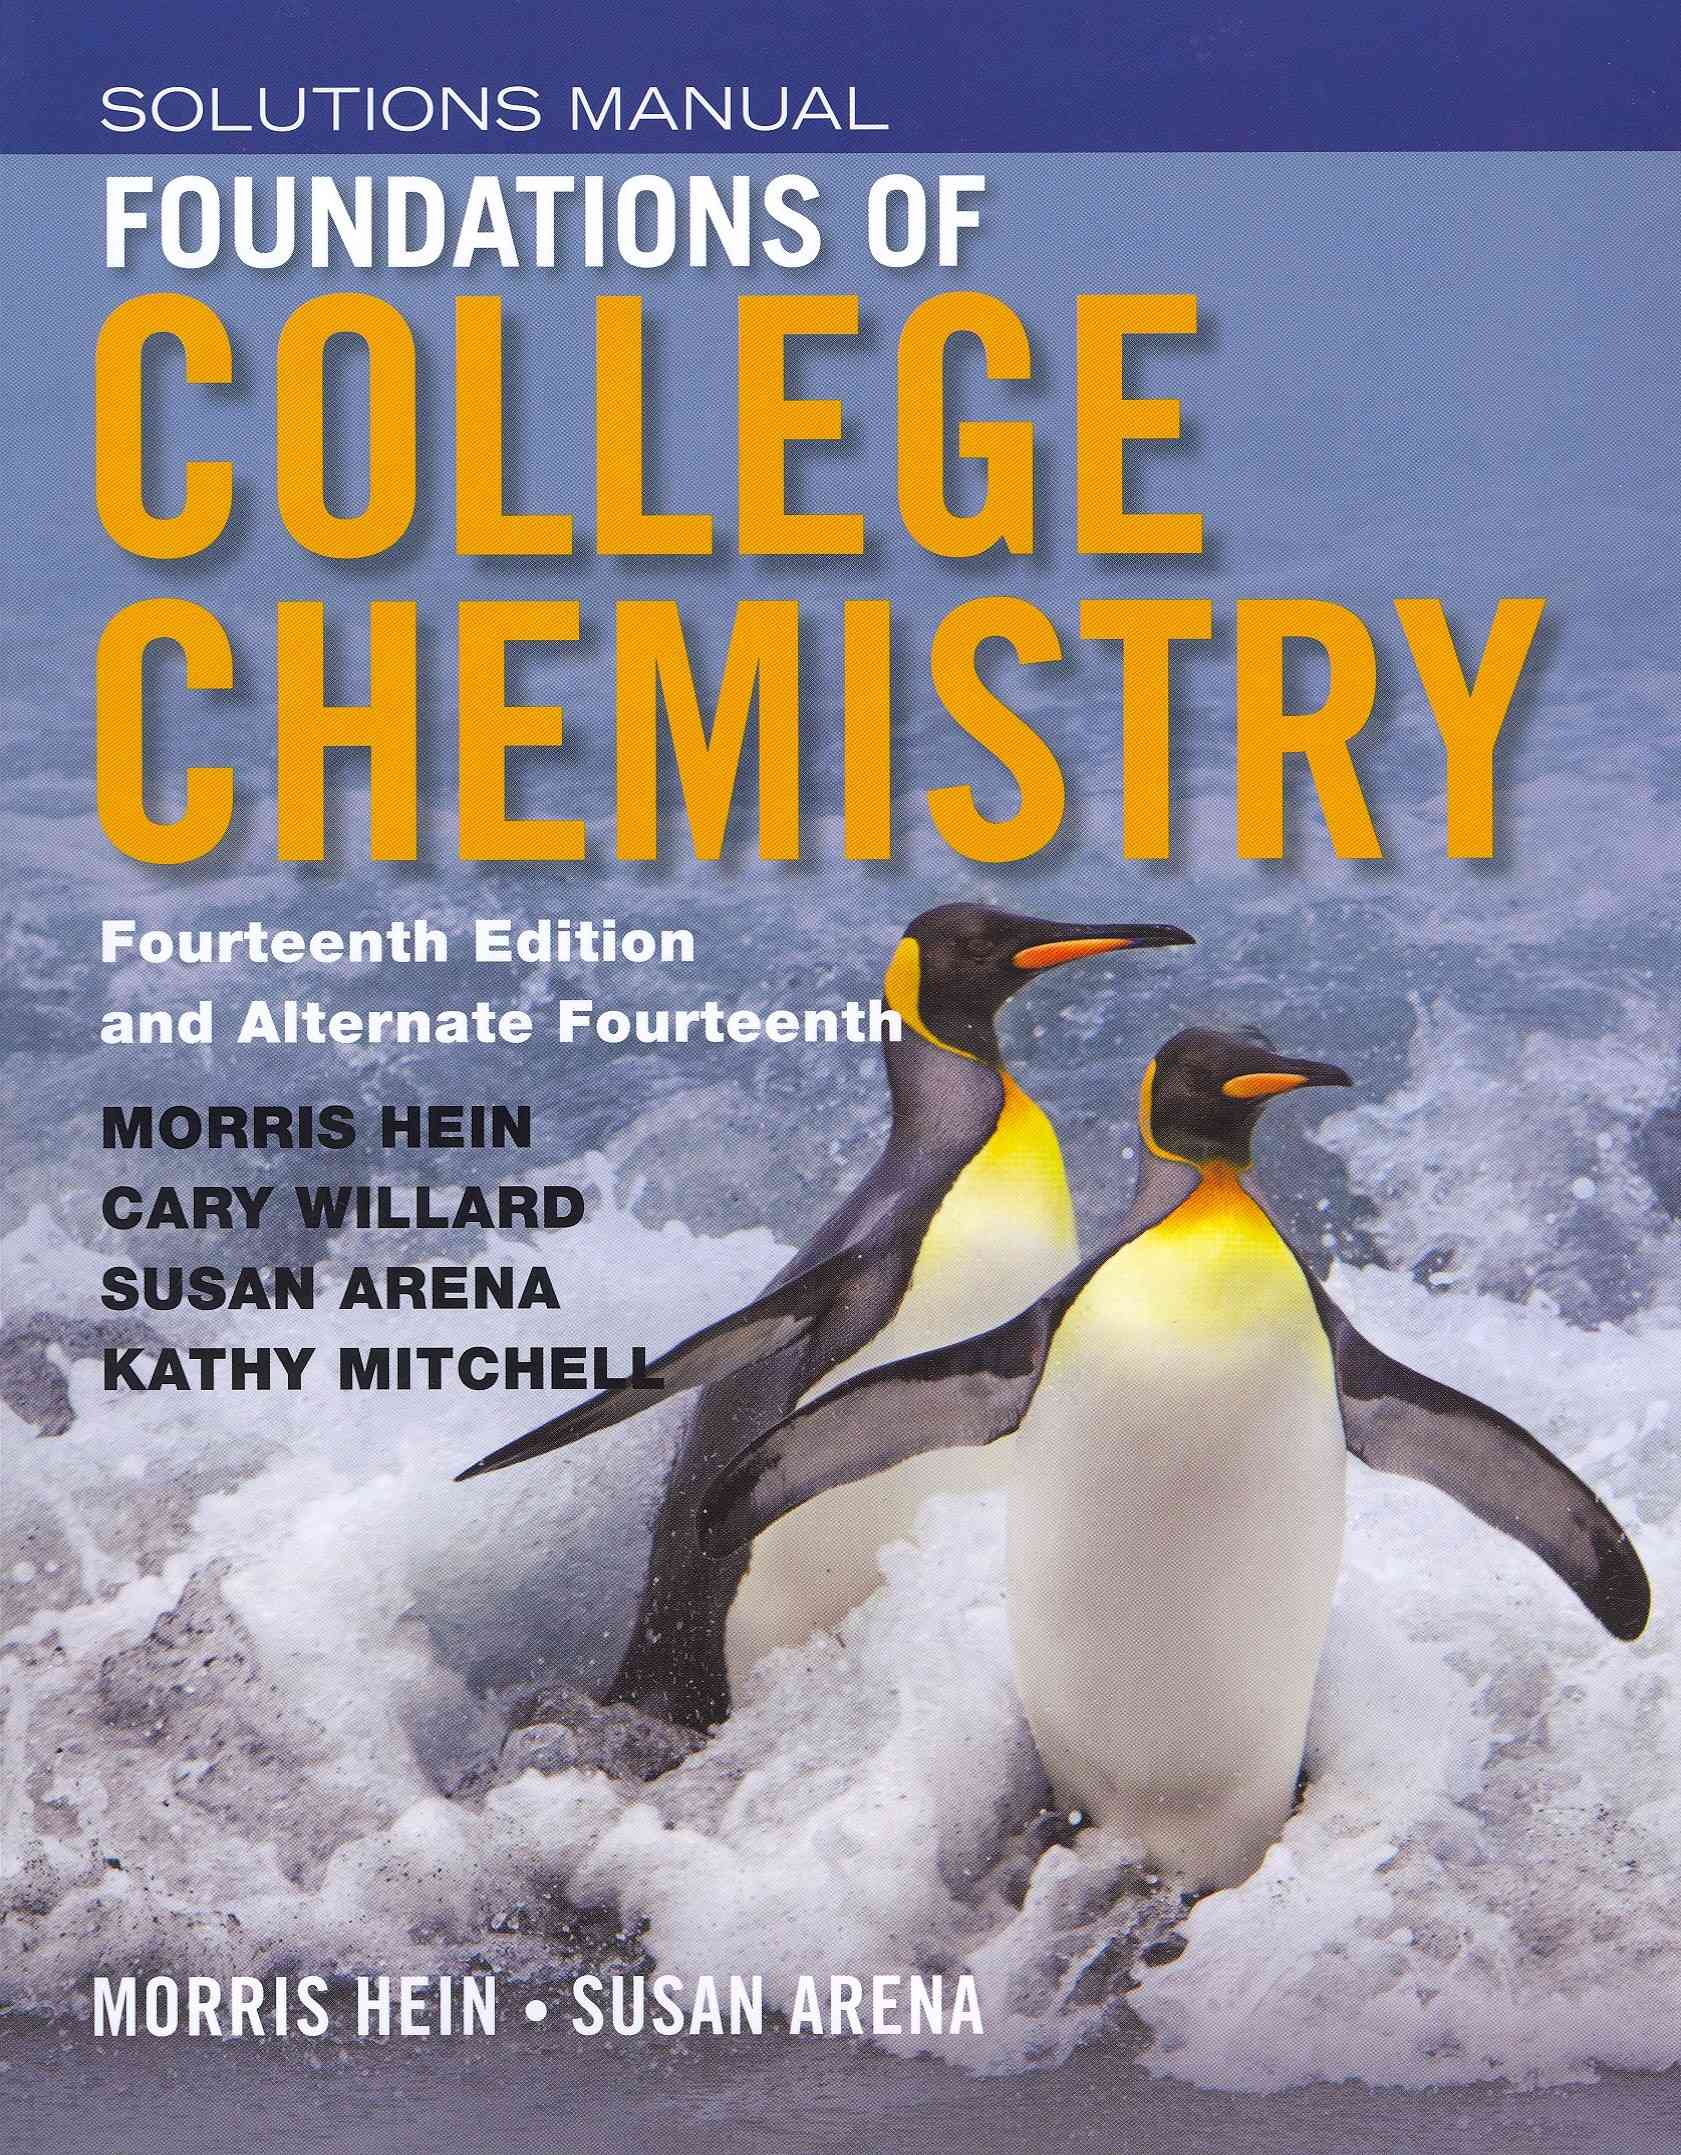 Foundations of College Chemistry By Hein, Morris/ Arena, Susan